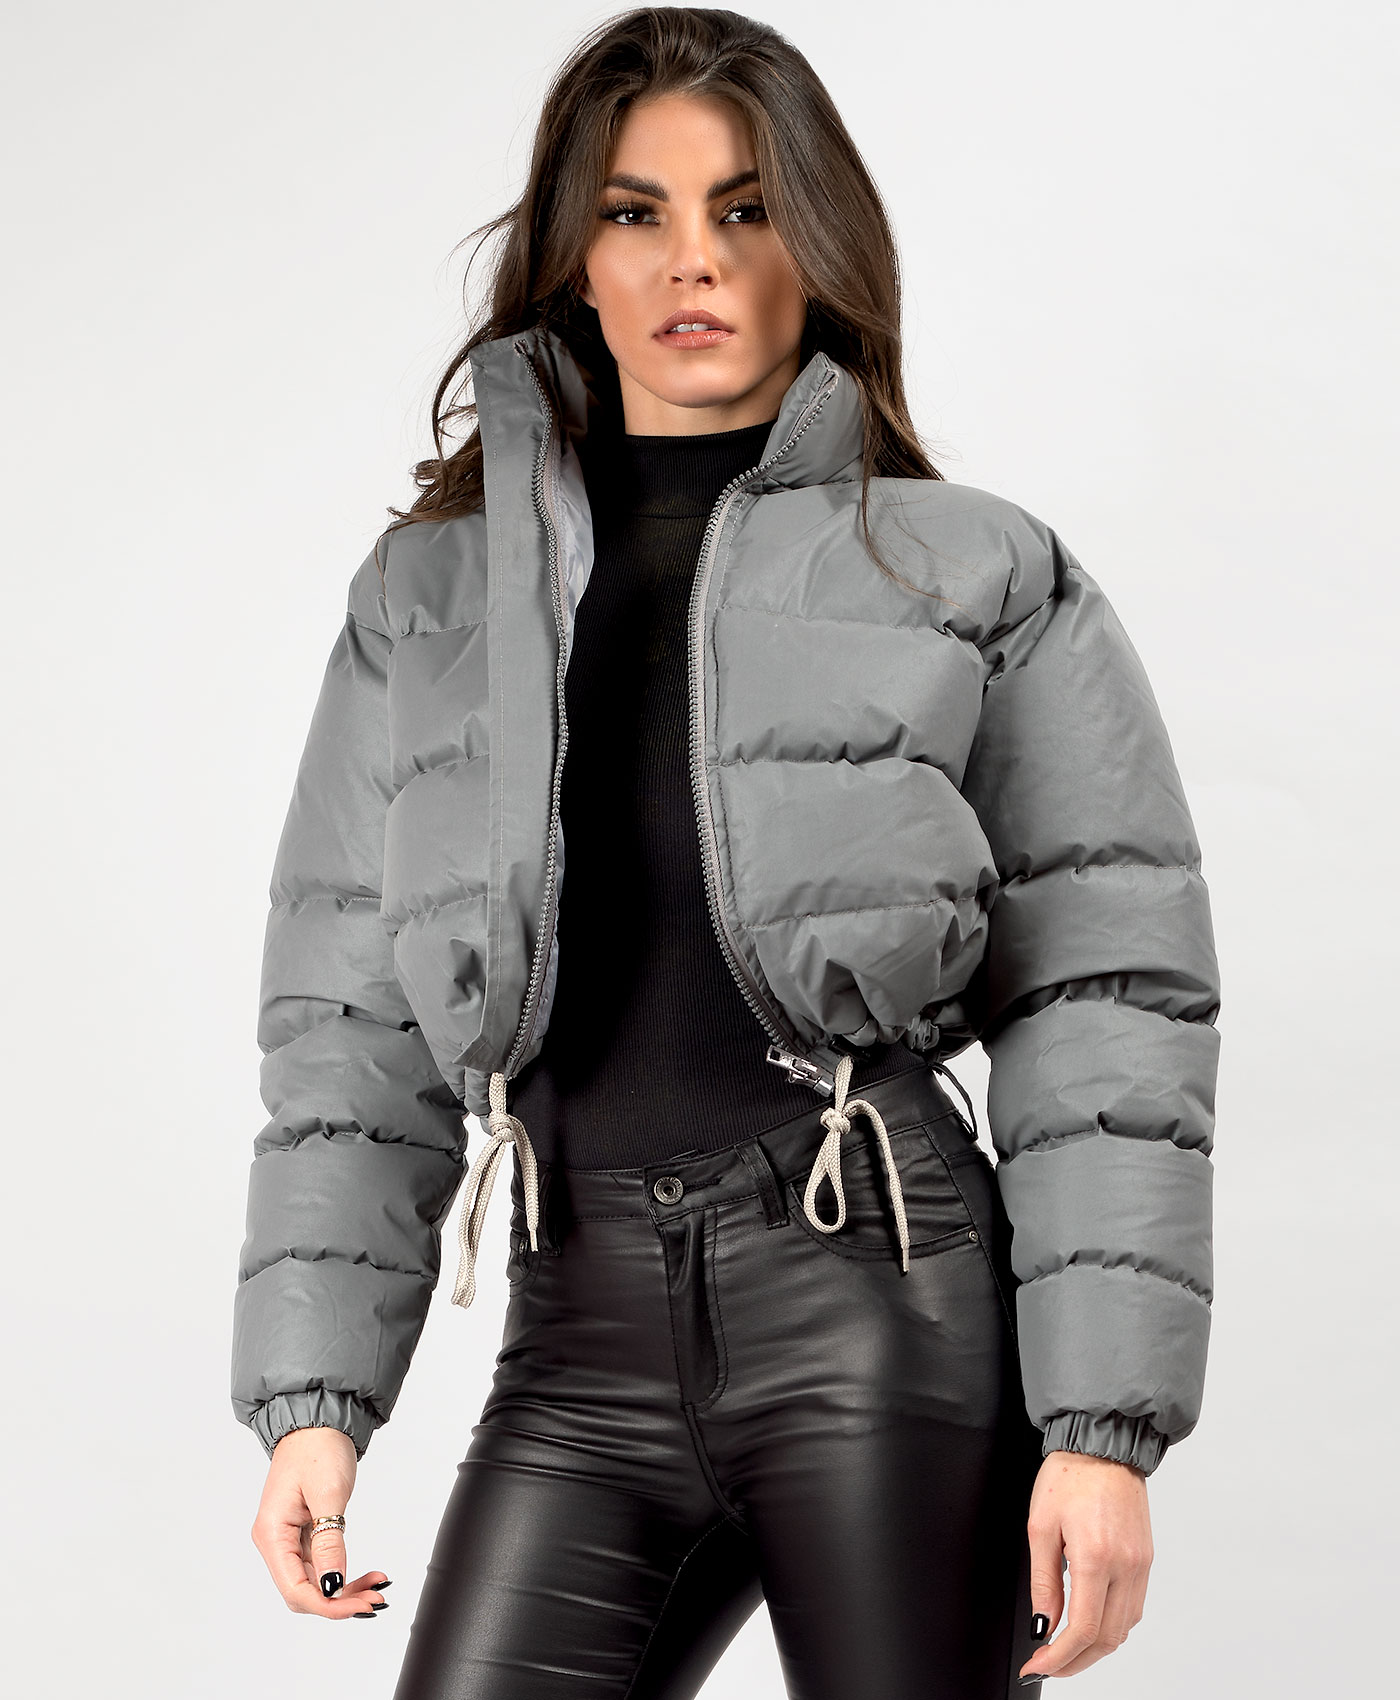 Womens-Reflective-Hi-Visibility-Thick-Puffer-Padded-Quilted-Cropped-Jacket-Coat Indexbild 20